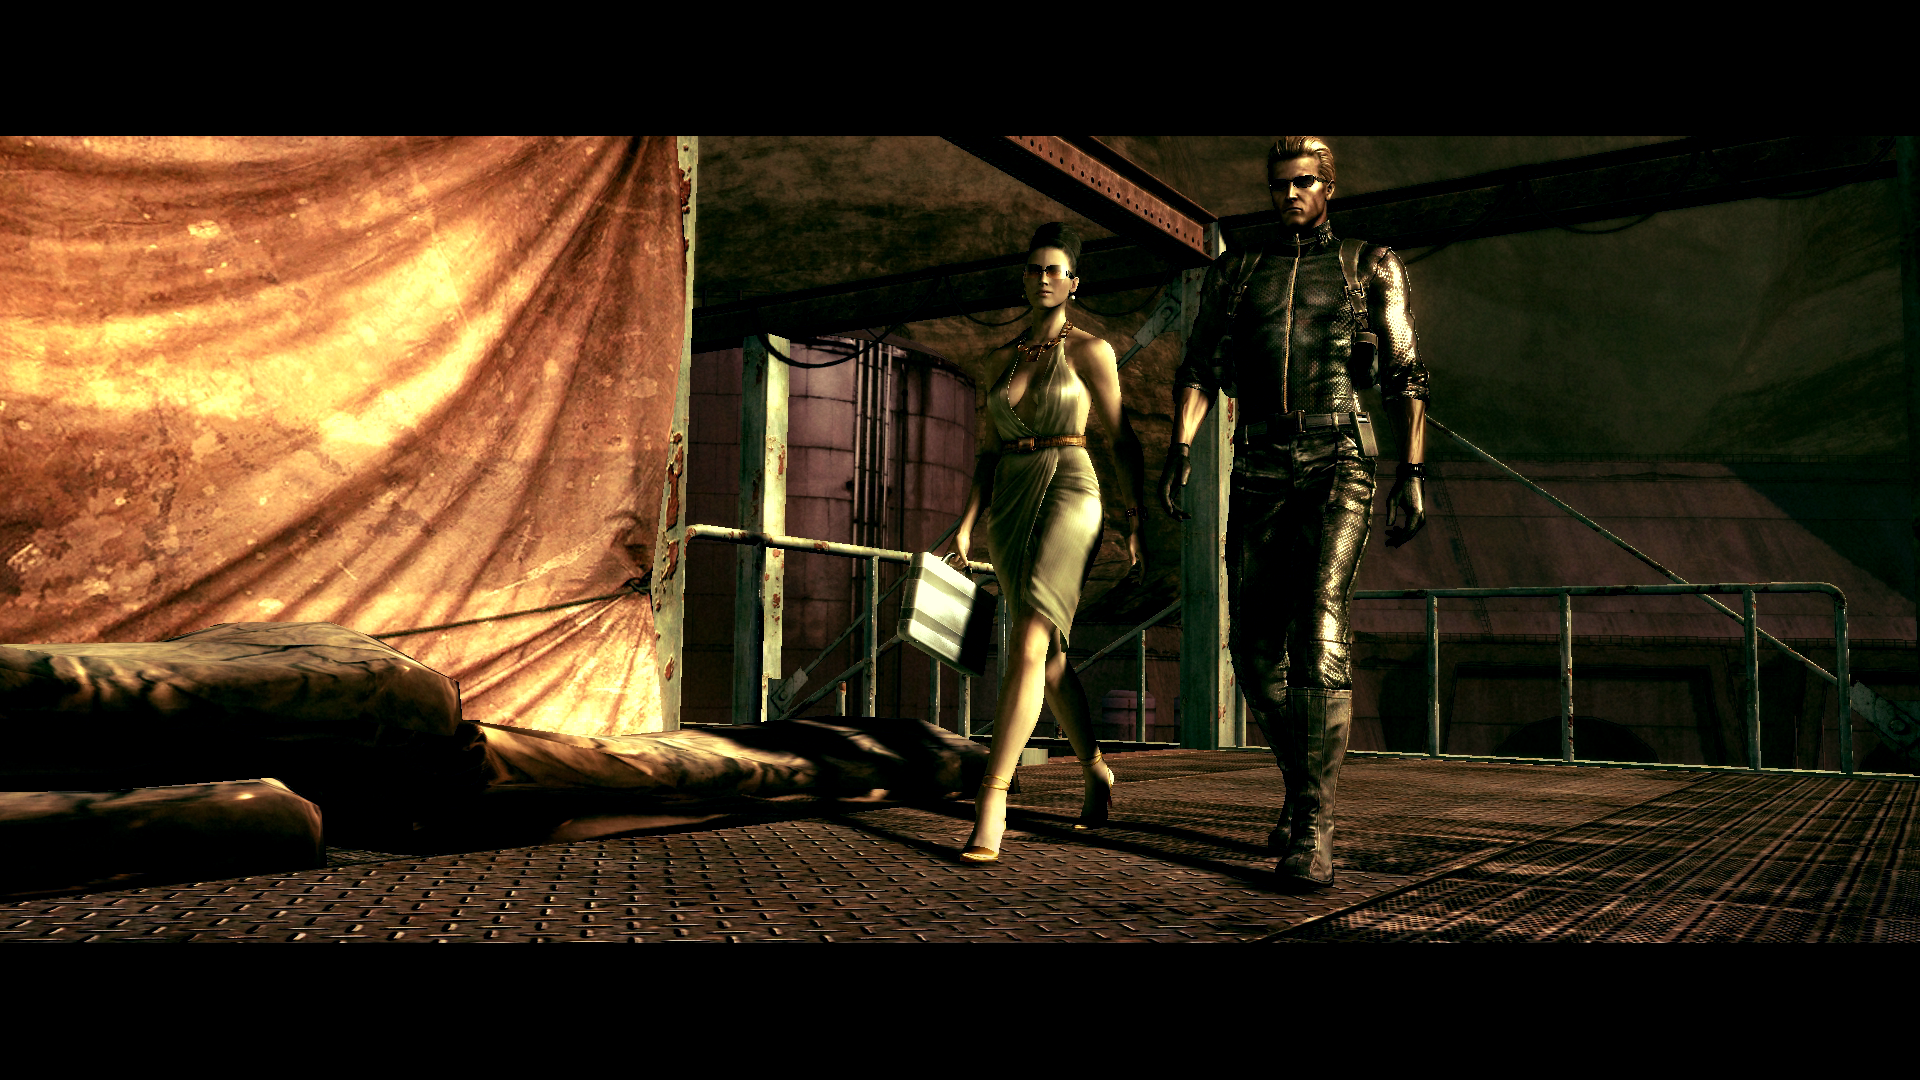 http://img3.wikia.nocookie.net/__cb20140717092116/residentevil/images/e/ef/Wesker_%26_Excella.png